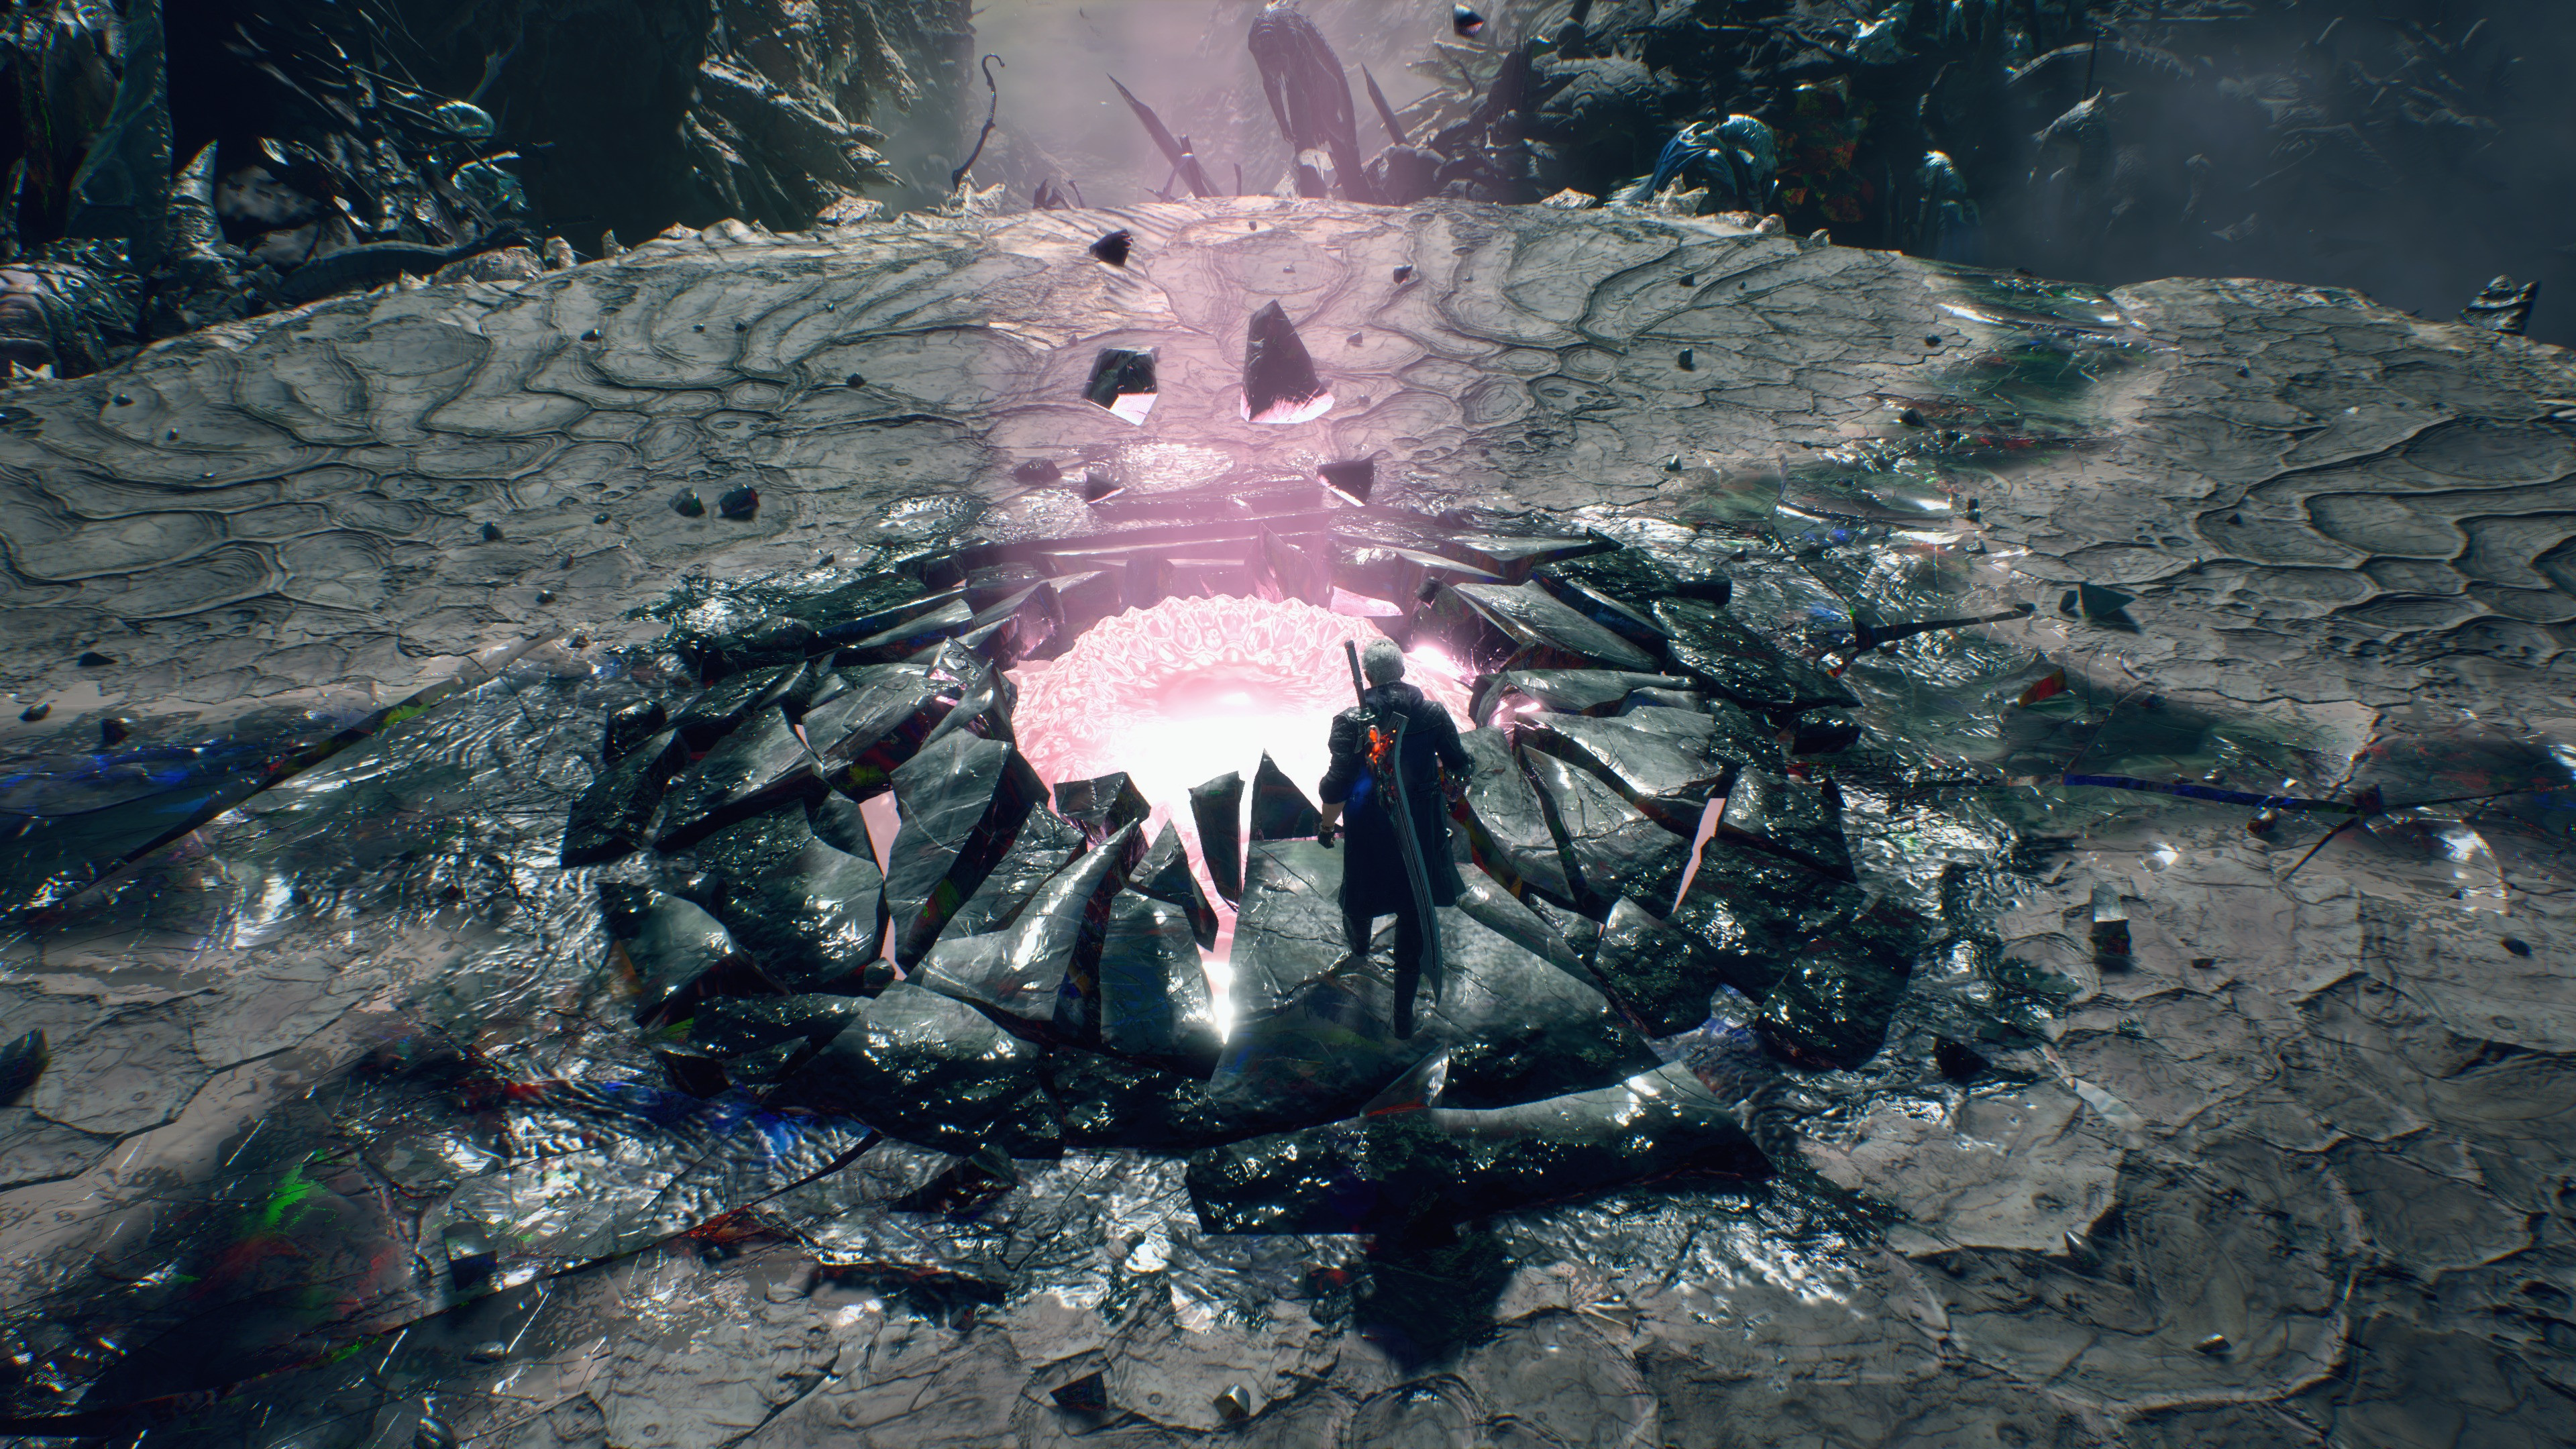 Click image for larger version  Name:	DMC5_Bloody_Palace_Screens_06.jpg Views:	1 Size:	2.92 MB ID:	3493702